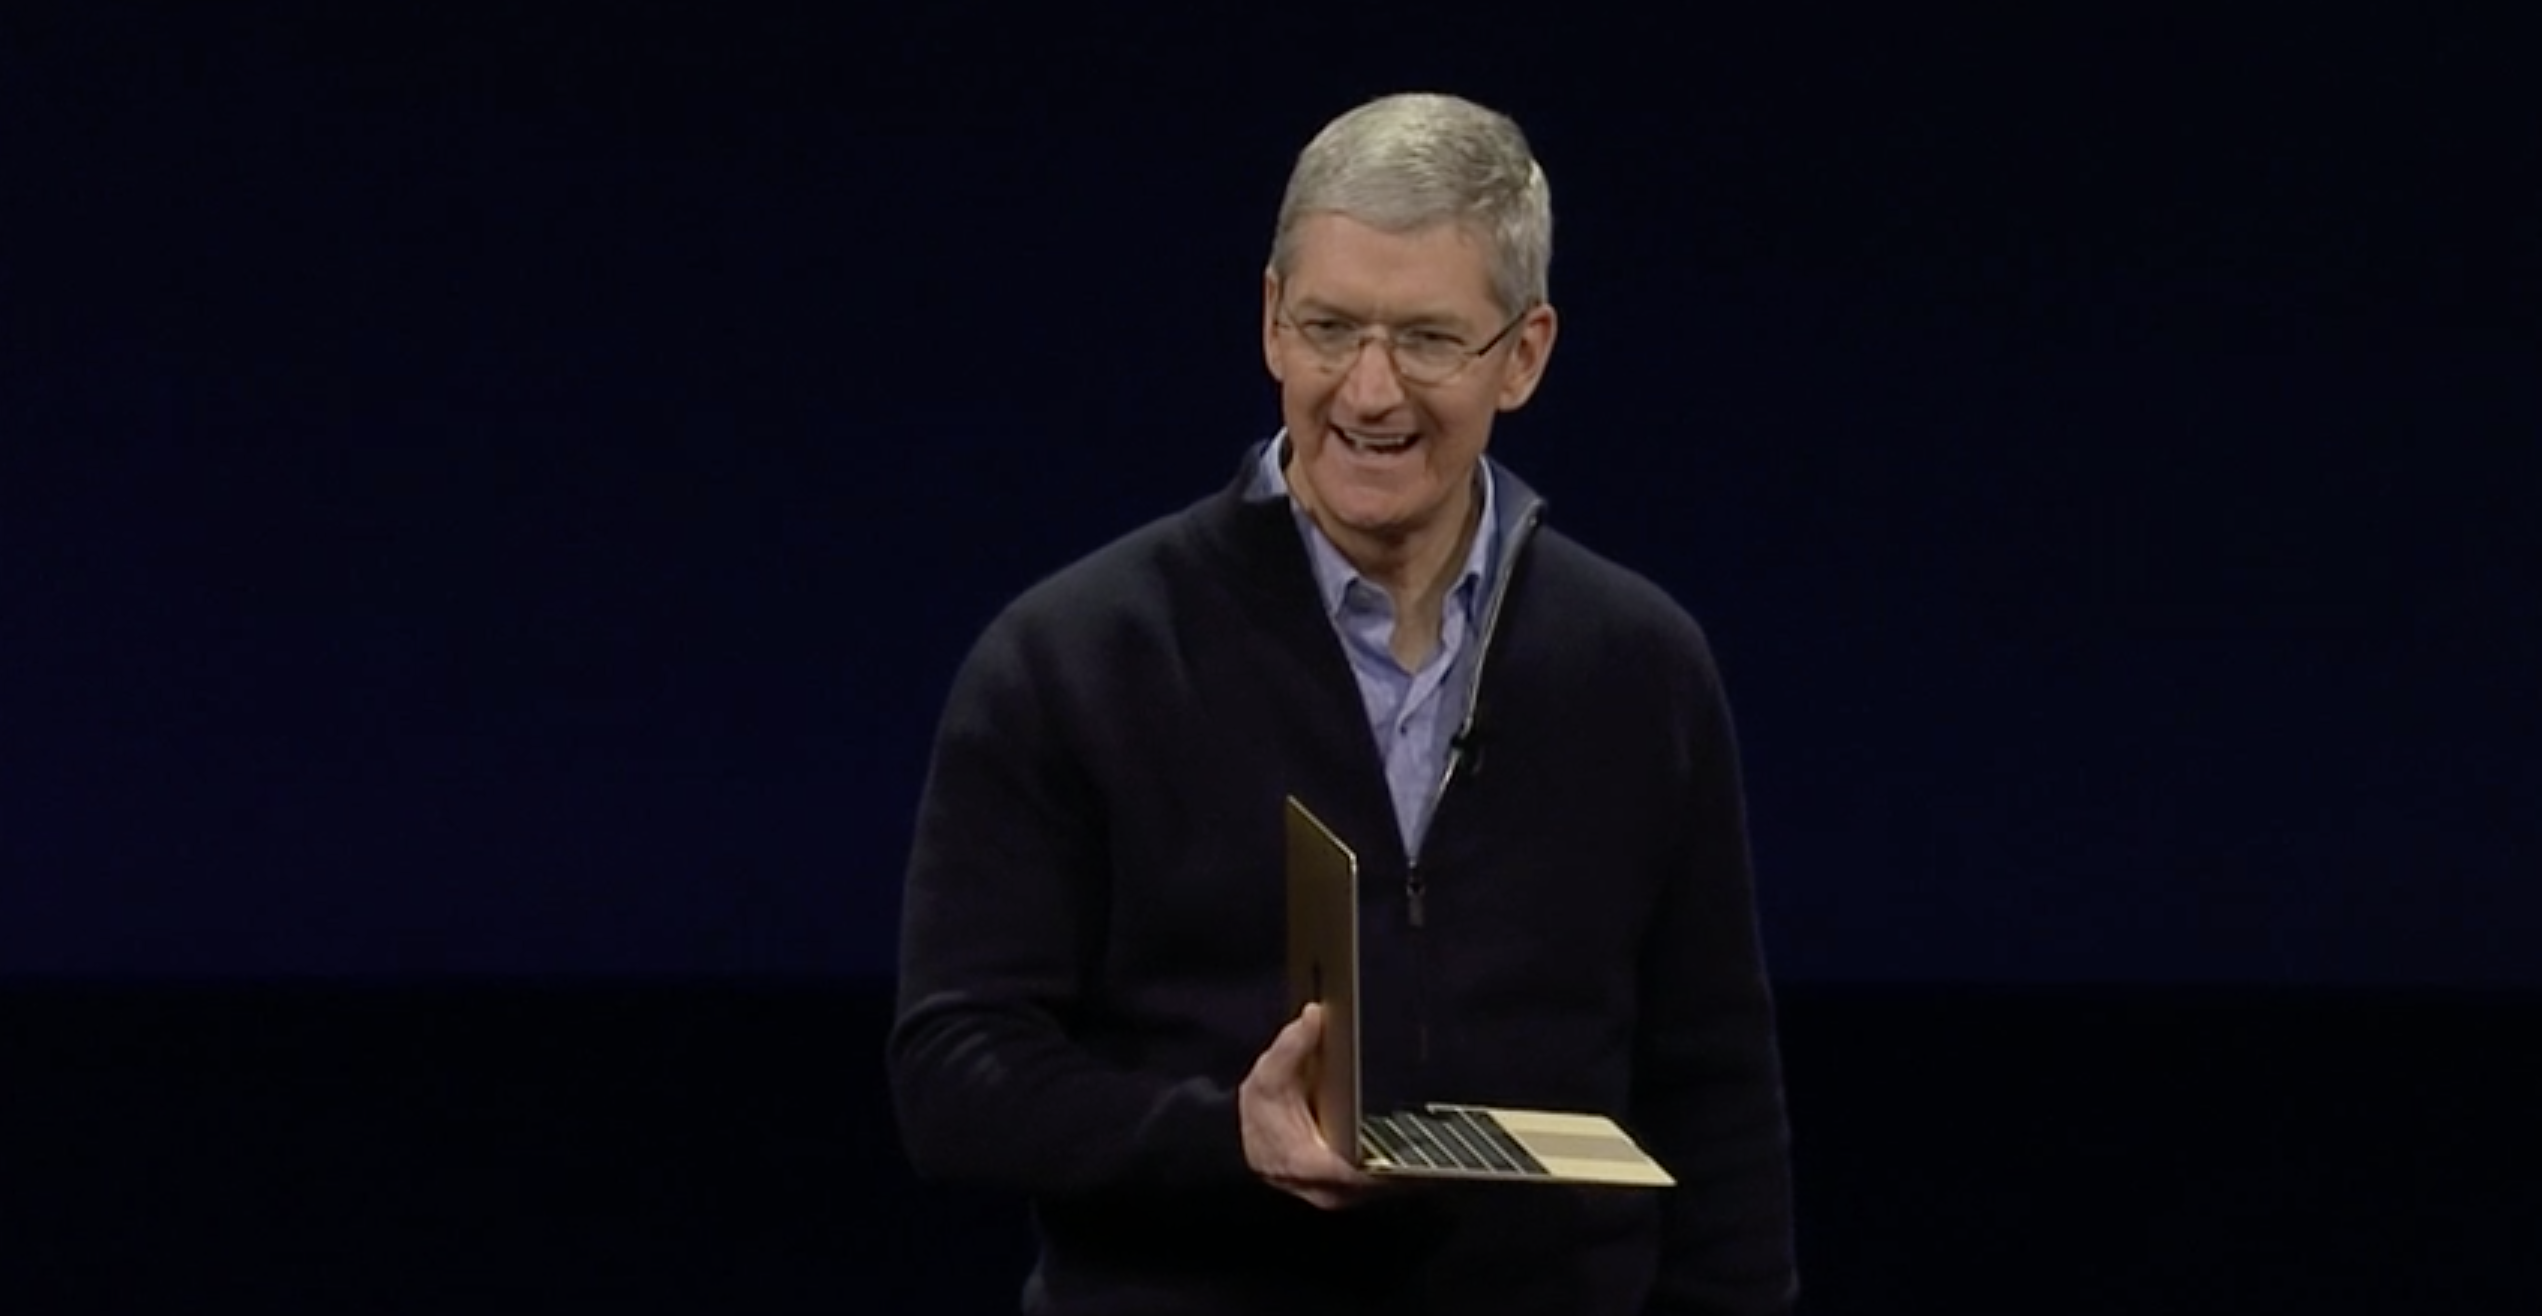 tim-cook-gold-macbook